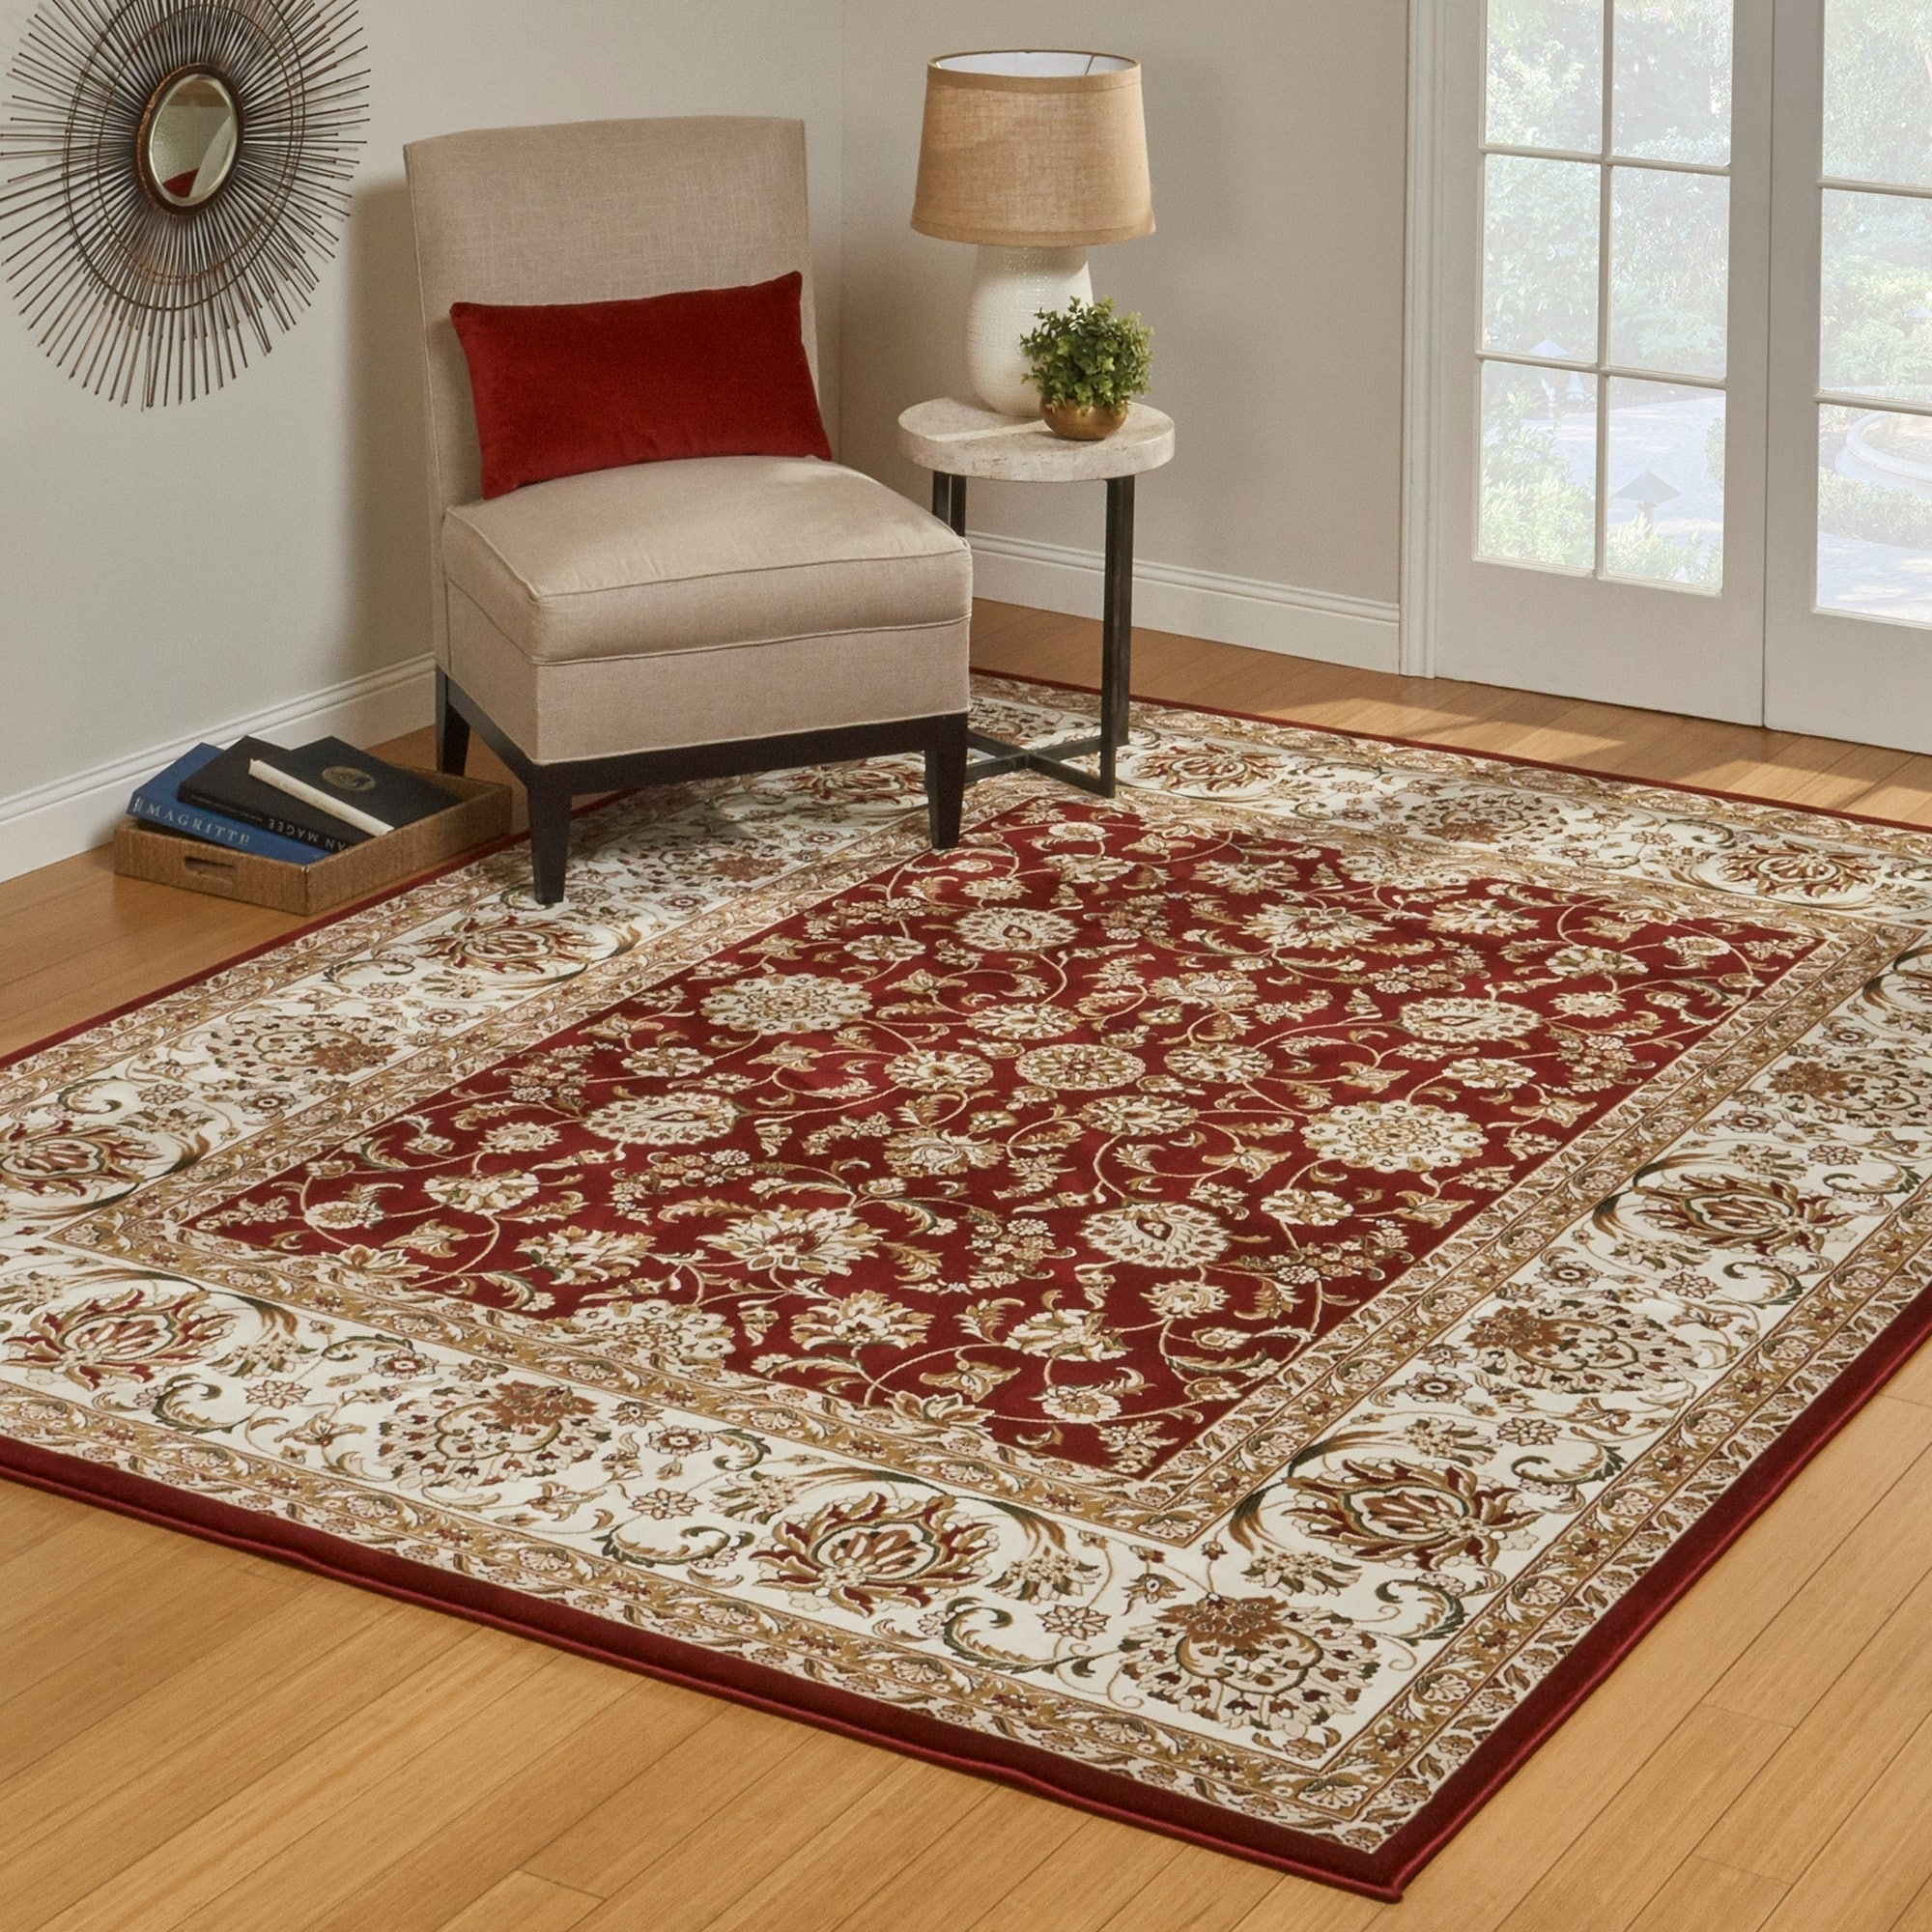 Cambridge Red Area Rug (710 X 10) By Gertmenian